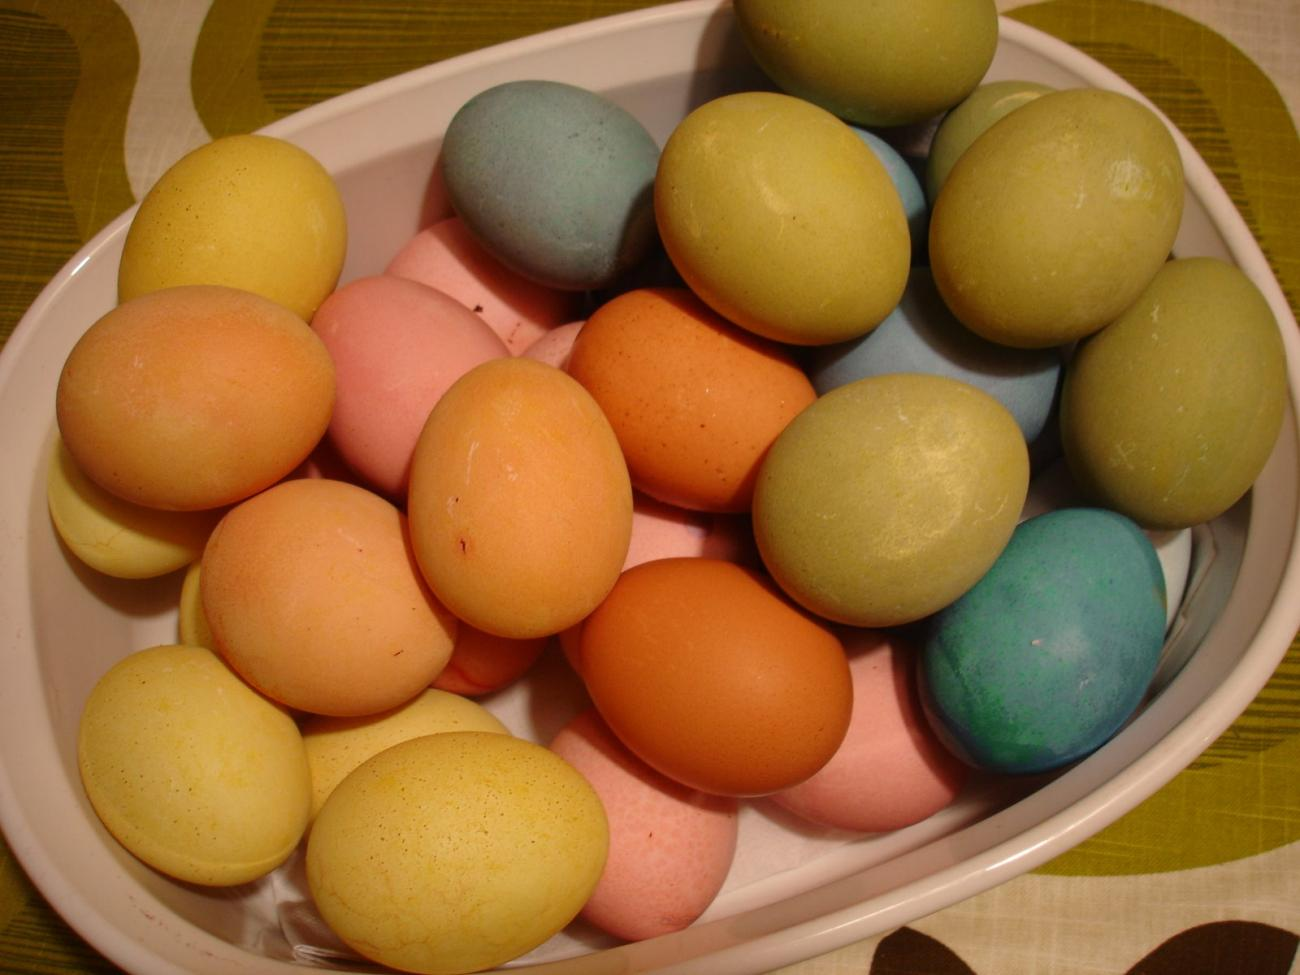 Naturally-Dyed Eggs for Easter